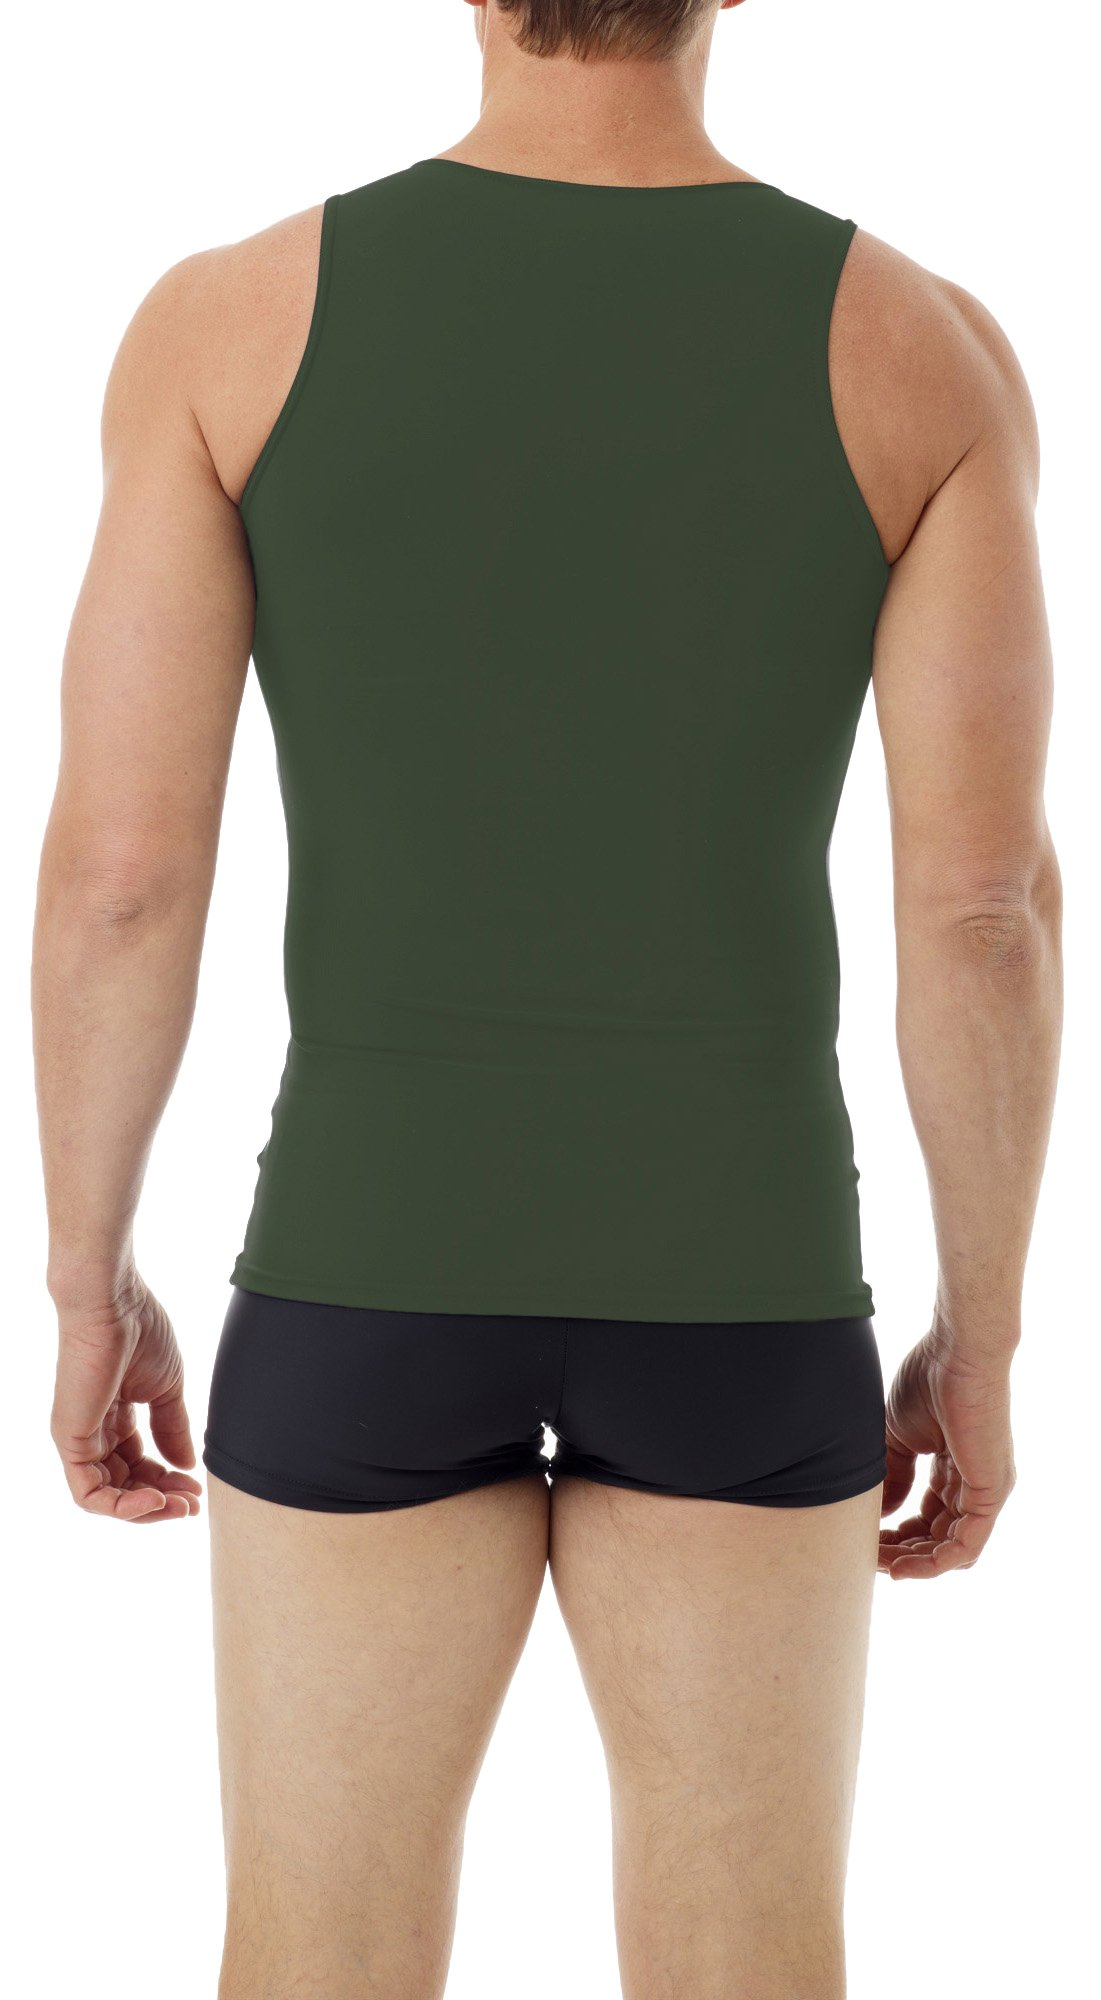 Underworks Mens Microfiber Compression Tank, Small, Army Green by Underworks (Image #2)